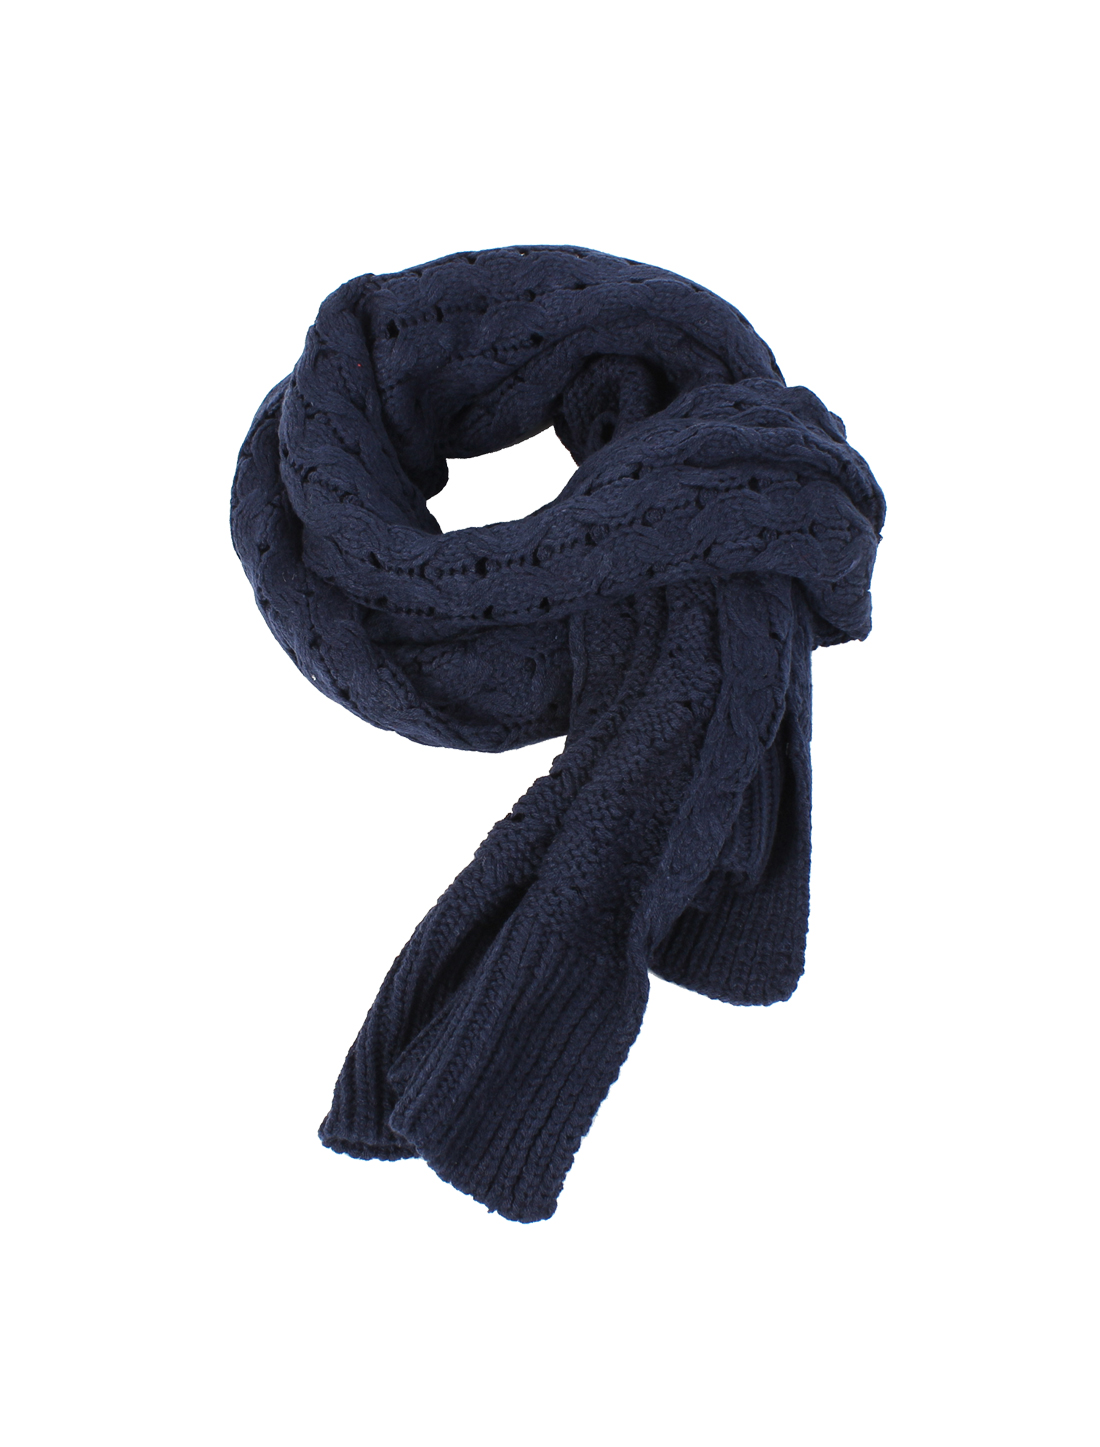 Winter Soft Warm Acrylic Casual Knitted Wide Stretchy Scarf Neckerchief